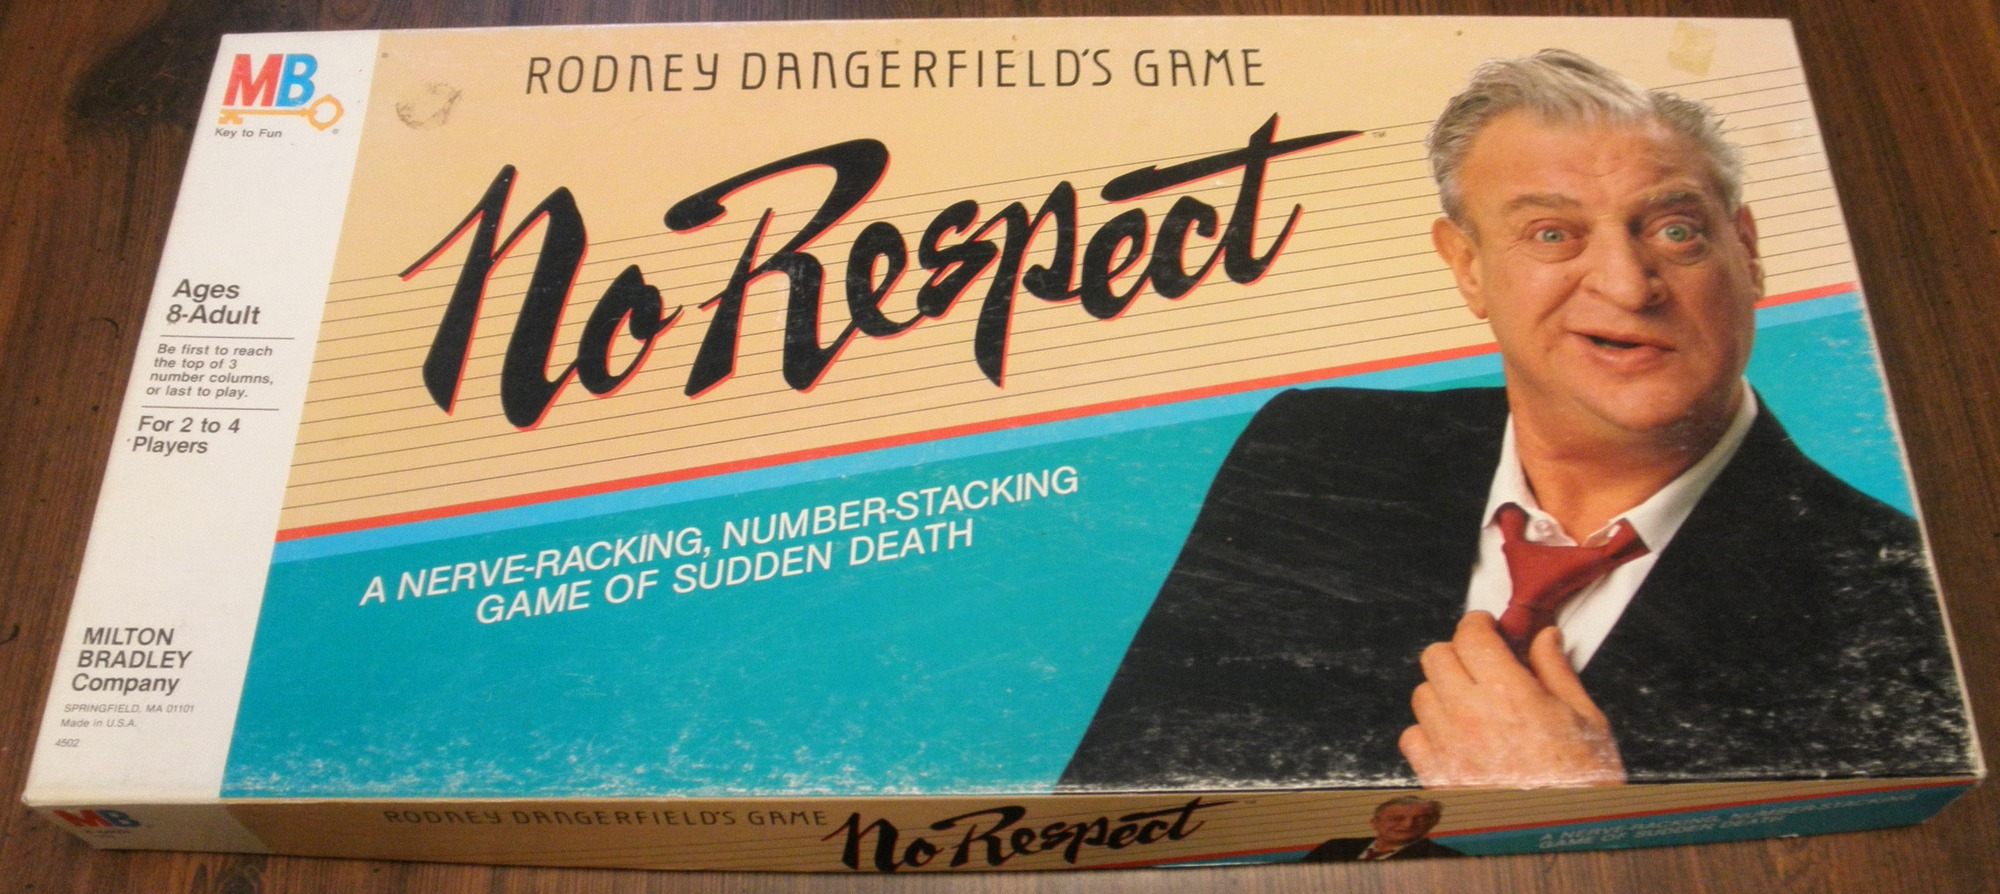 Rodney Dangerfield's Game No Respect Box